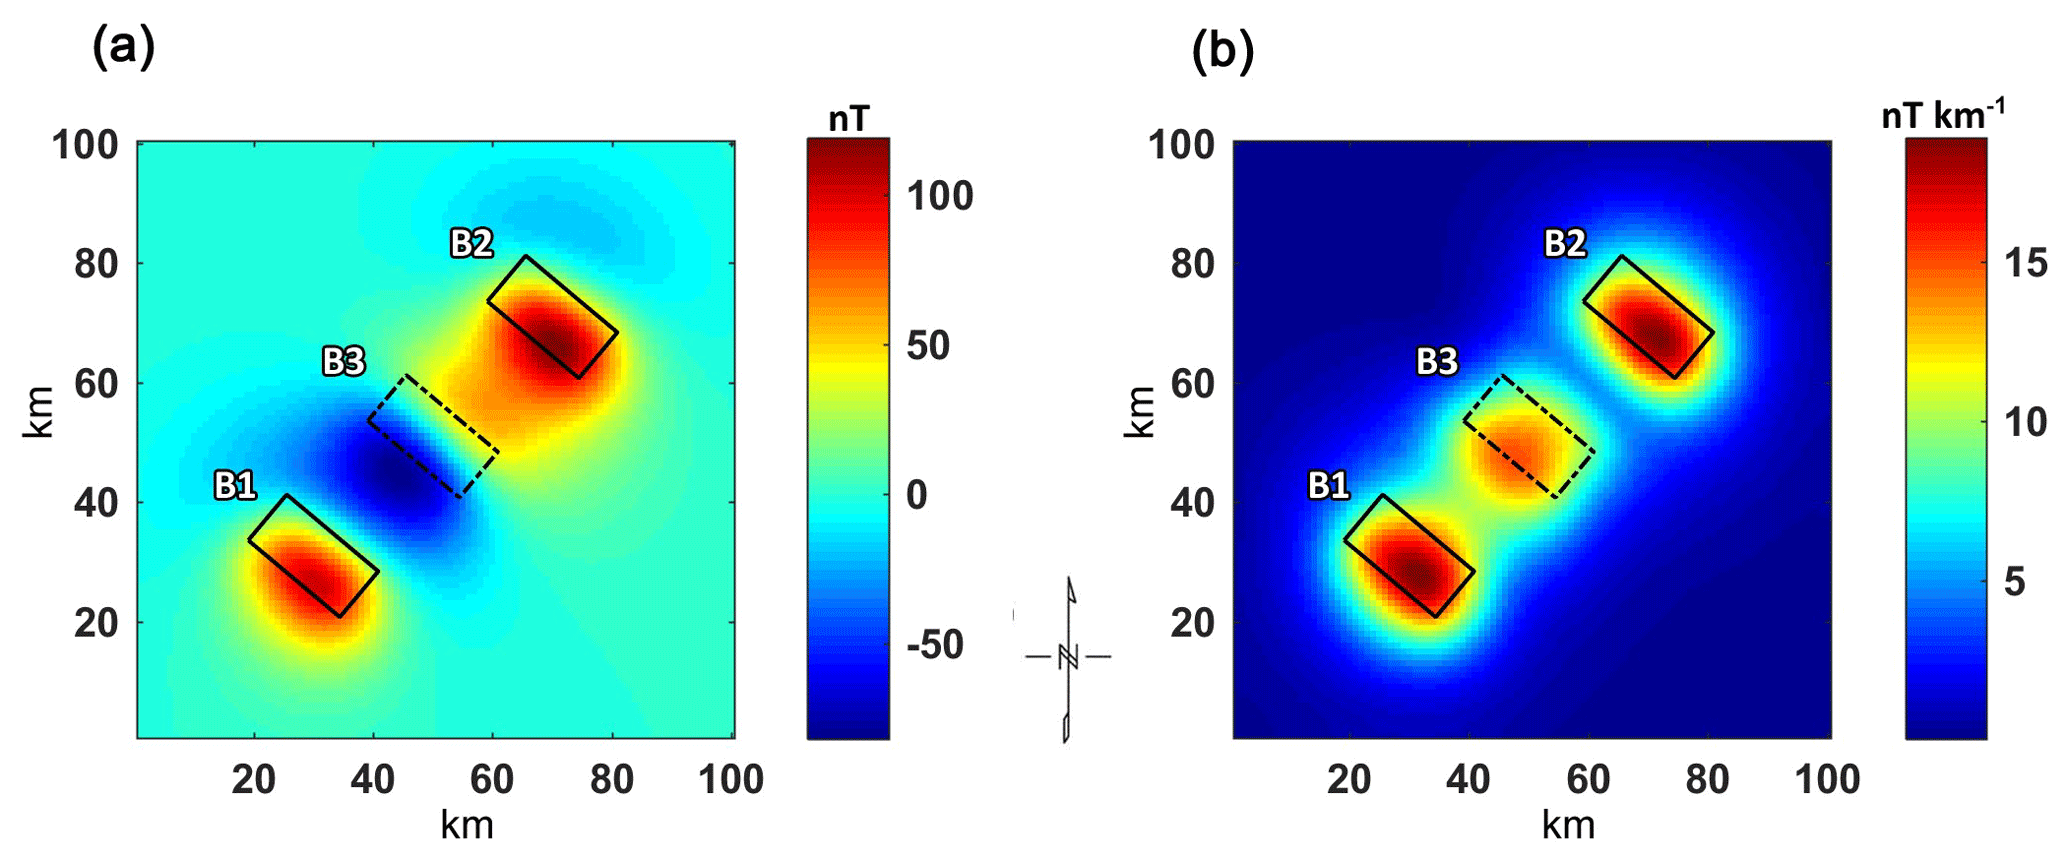 SE - Joint analysis of the magnetic field and total gradient